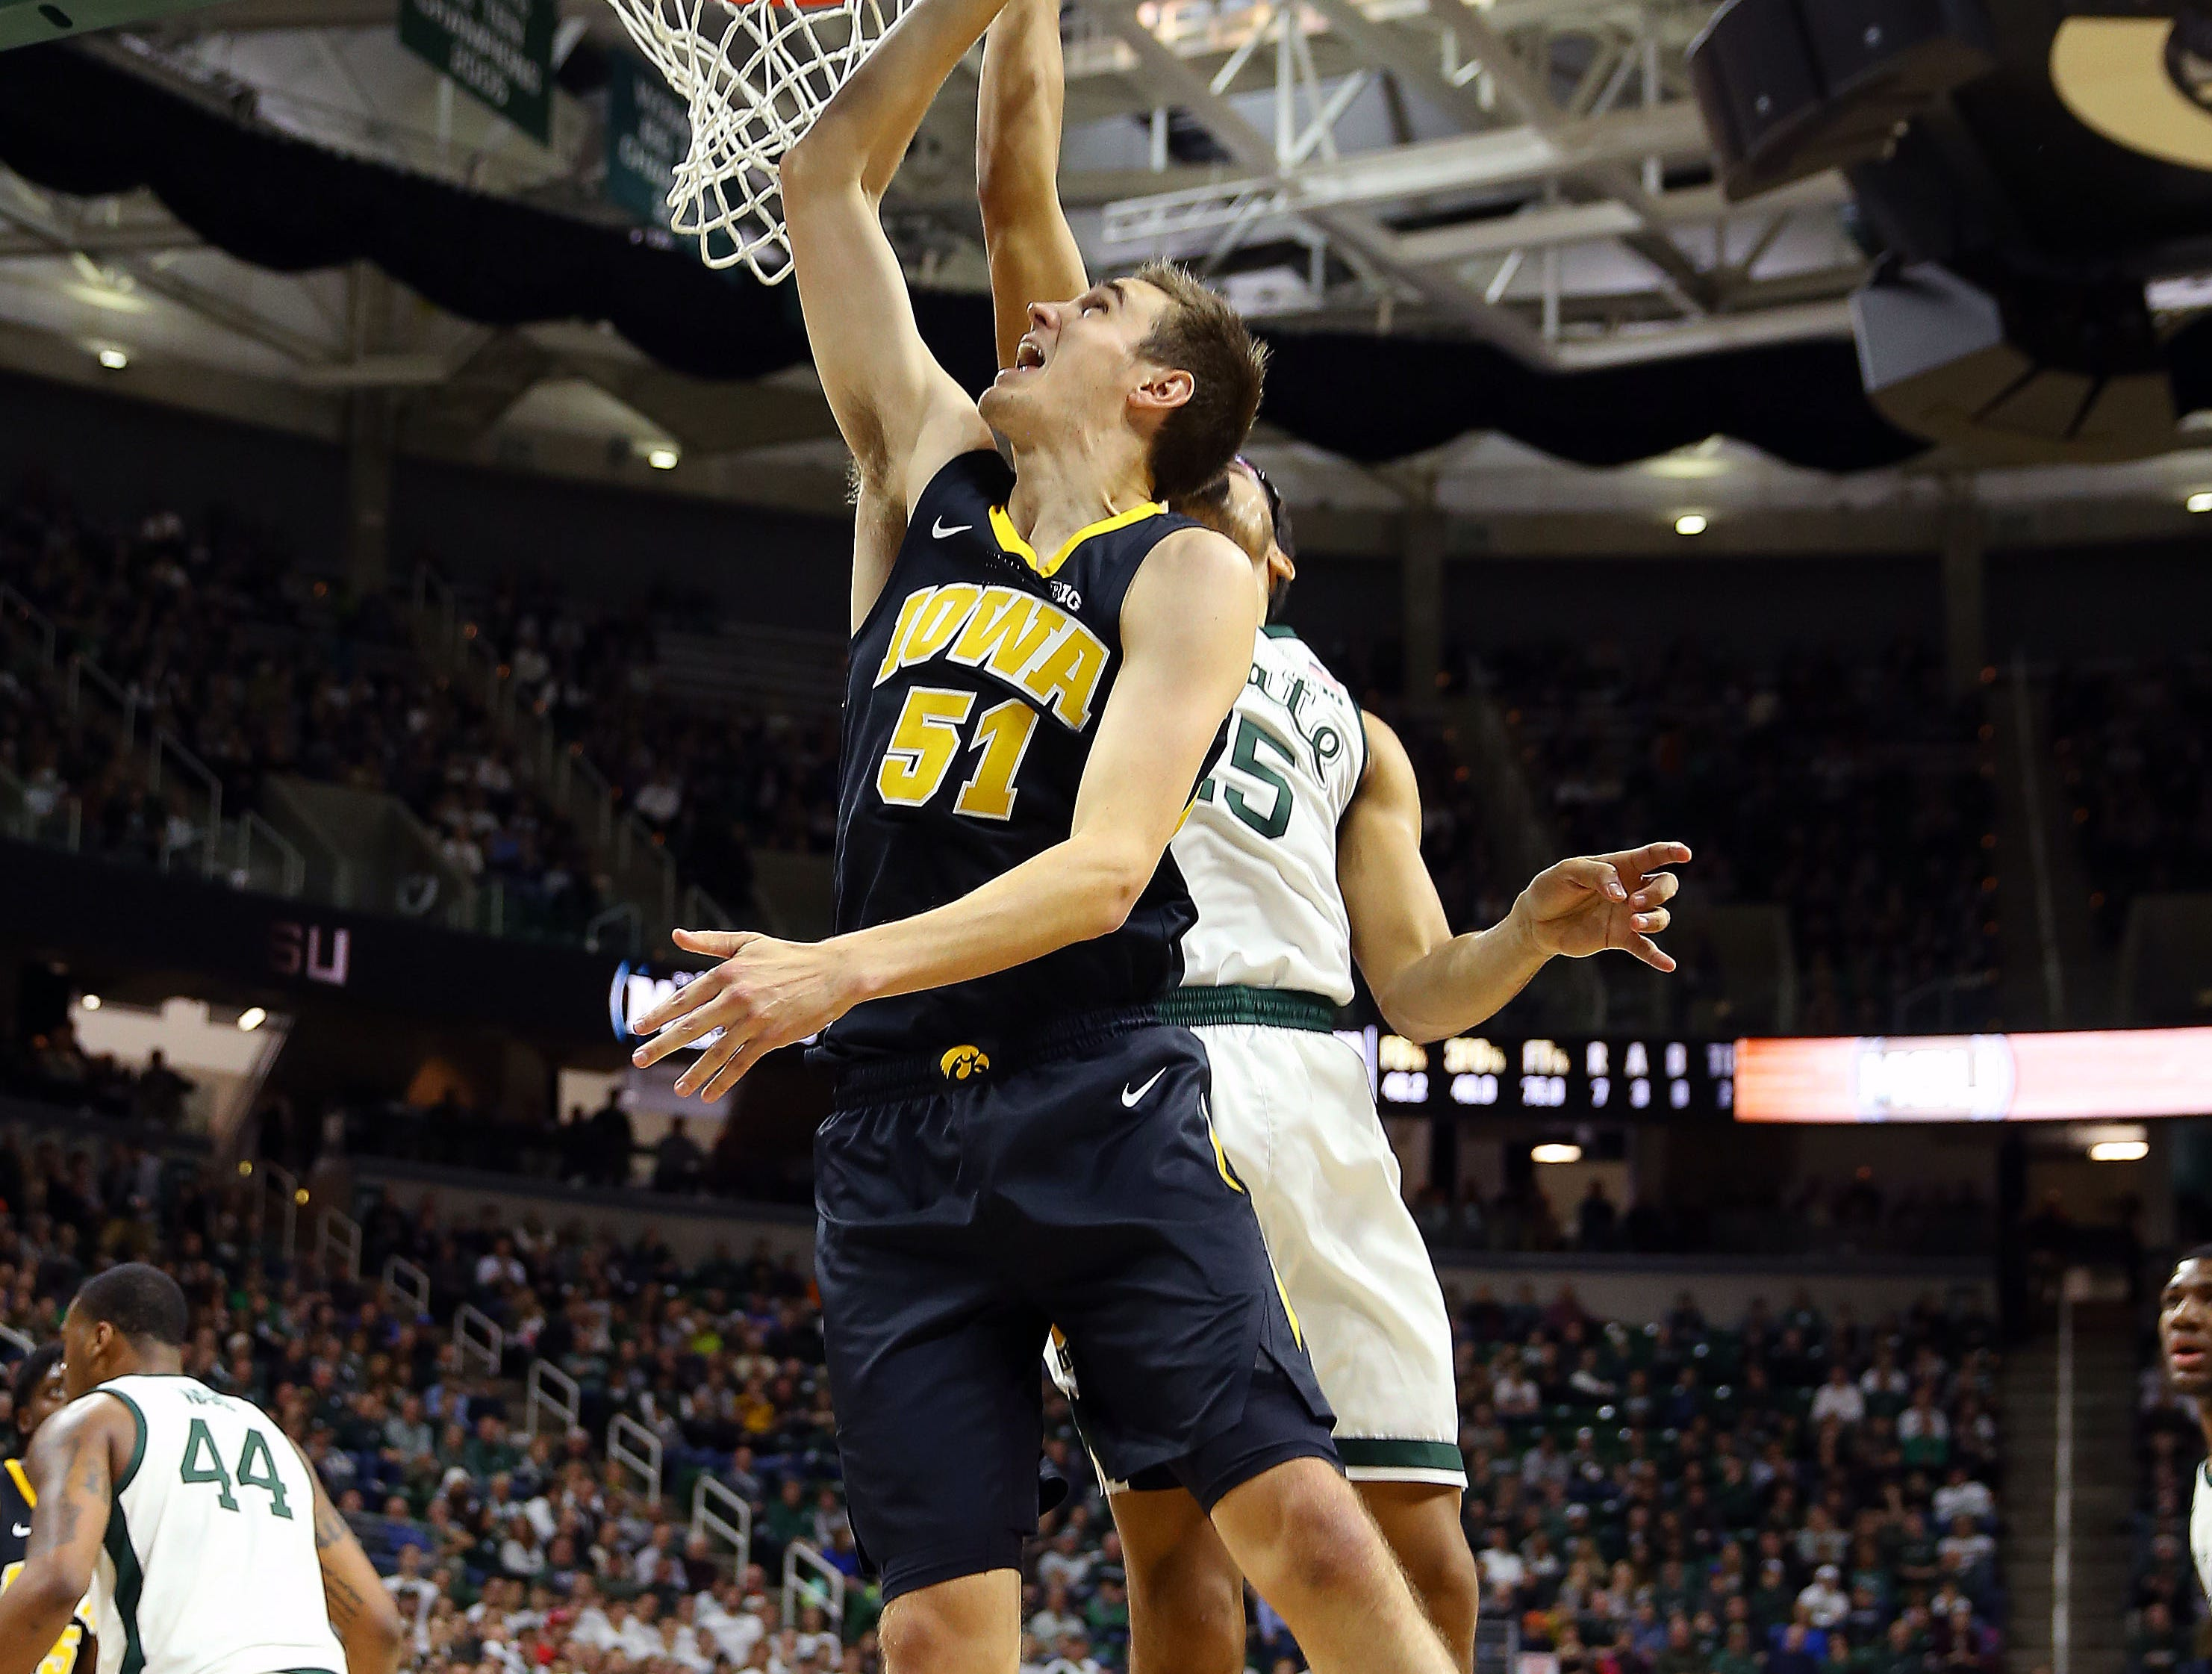 Dec 3, 2018; East Lansing, MI, USA; Iowa Hawkeyes forward Nicholas Baer (51) lays the ball up over Michigan State Spartans forward Kenny Goins (25) during the first half of a game at Breslin Center. Mandatory Credit: Mike Carter-USA TODAY Sports